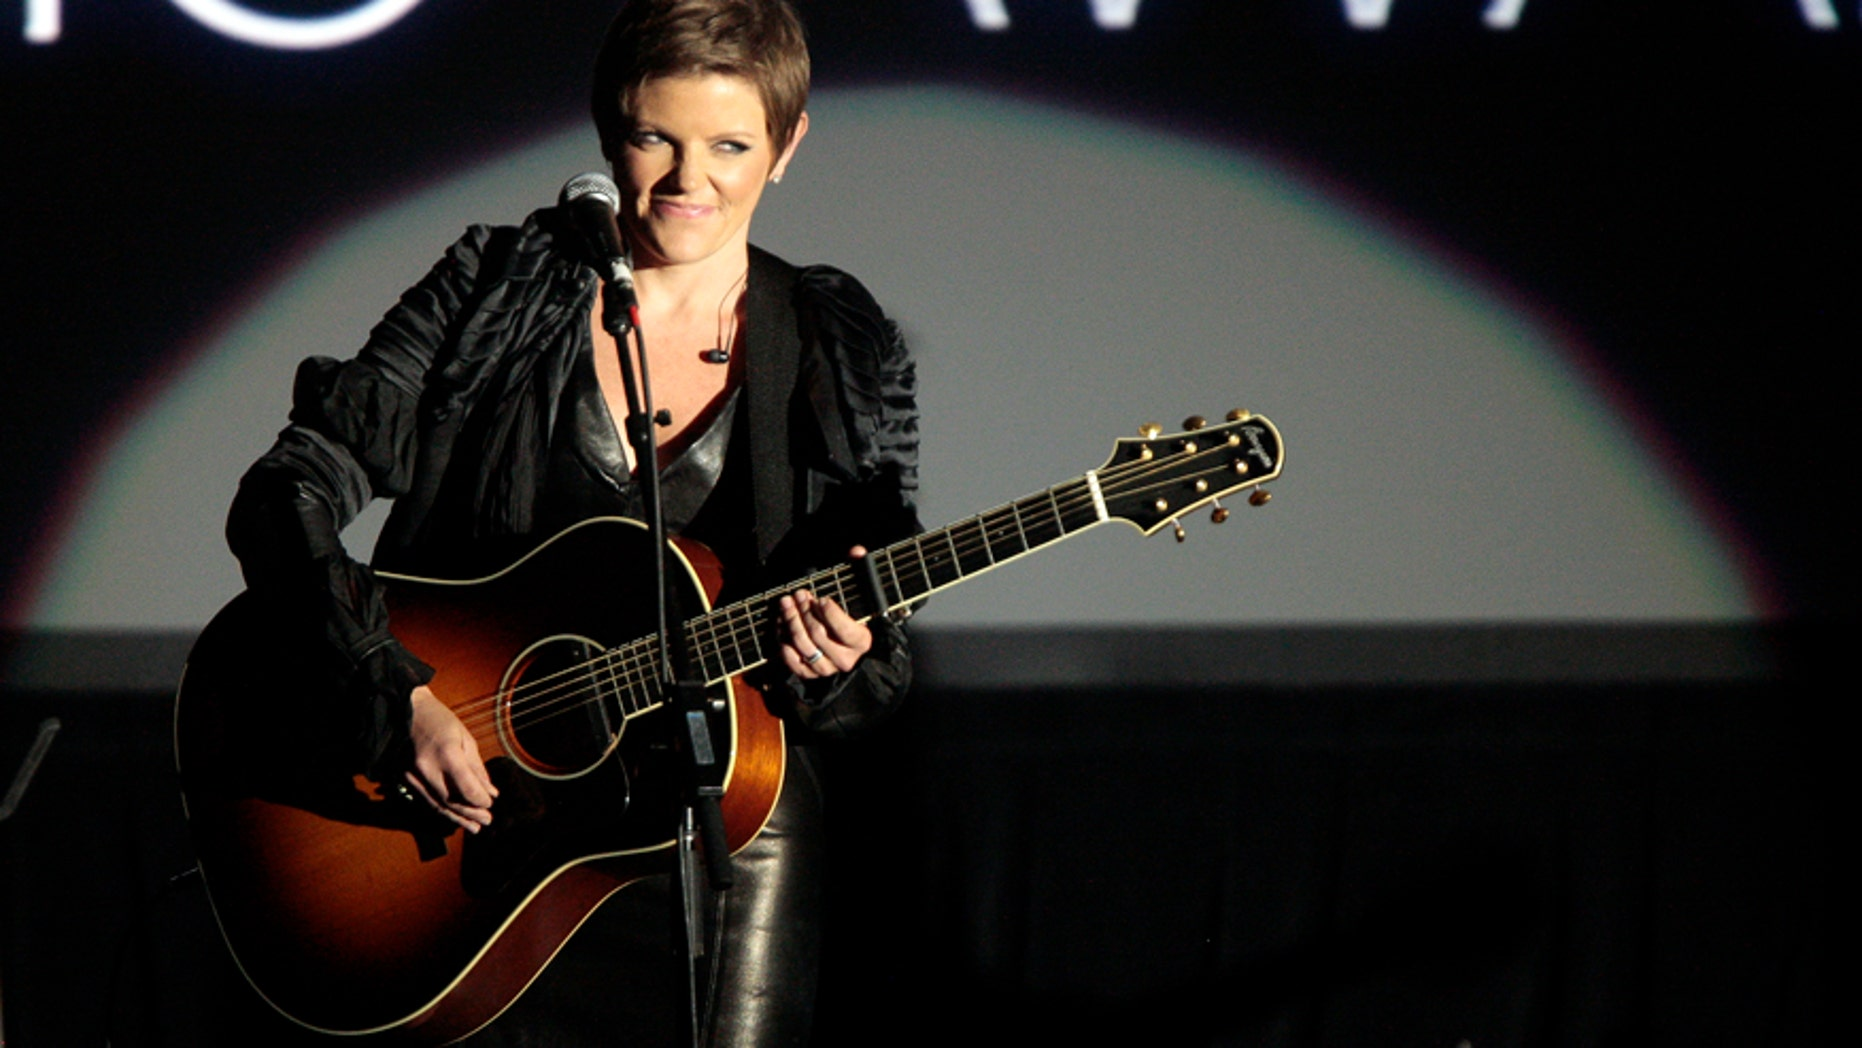 """Musician Natalie Maines of the Dixie Chicks performs Carly Simon's """"That's The Way I've Always Heard It Should Be"""" at the 29th Annual ASCAP Pop Music Awards in Hollywood, California April 18, 2012."""